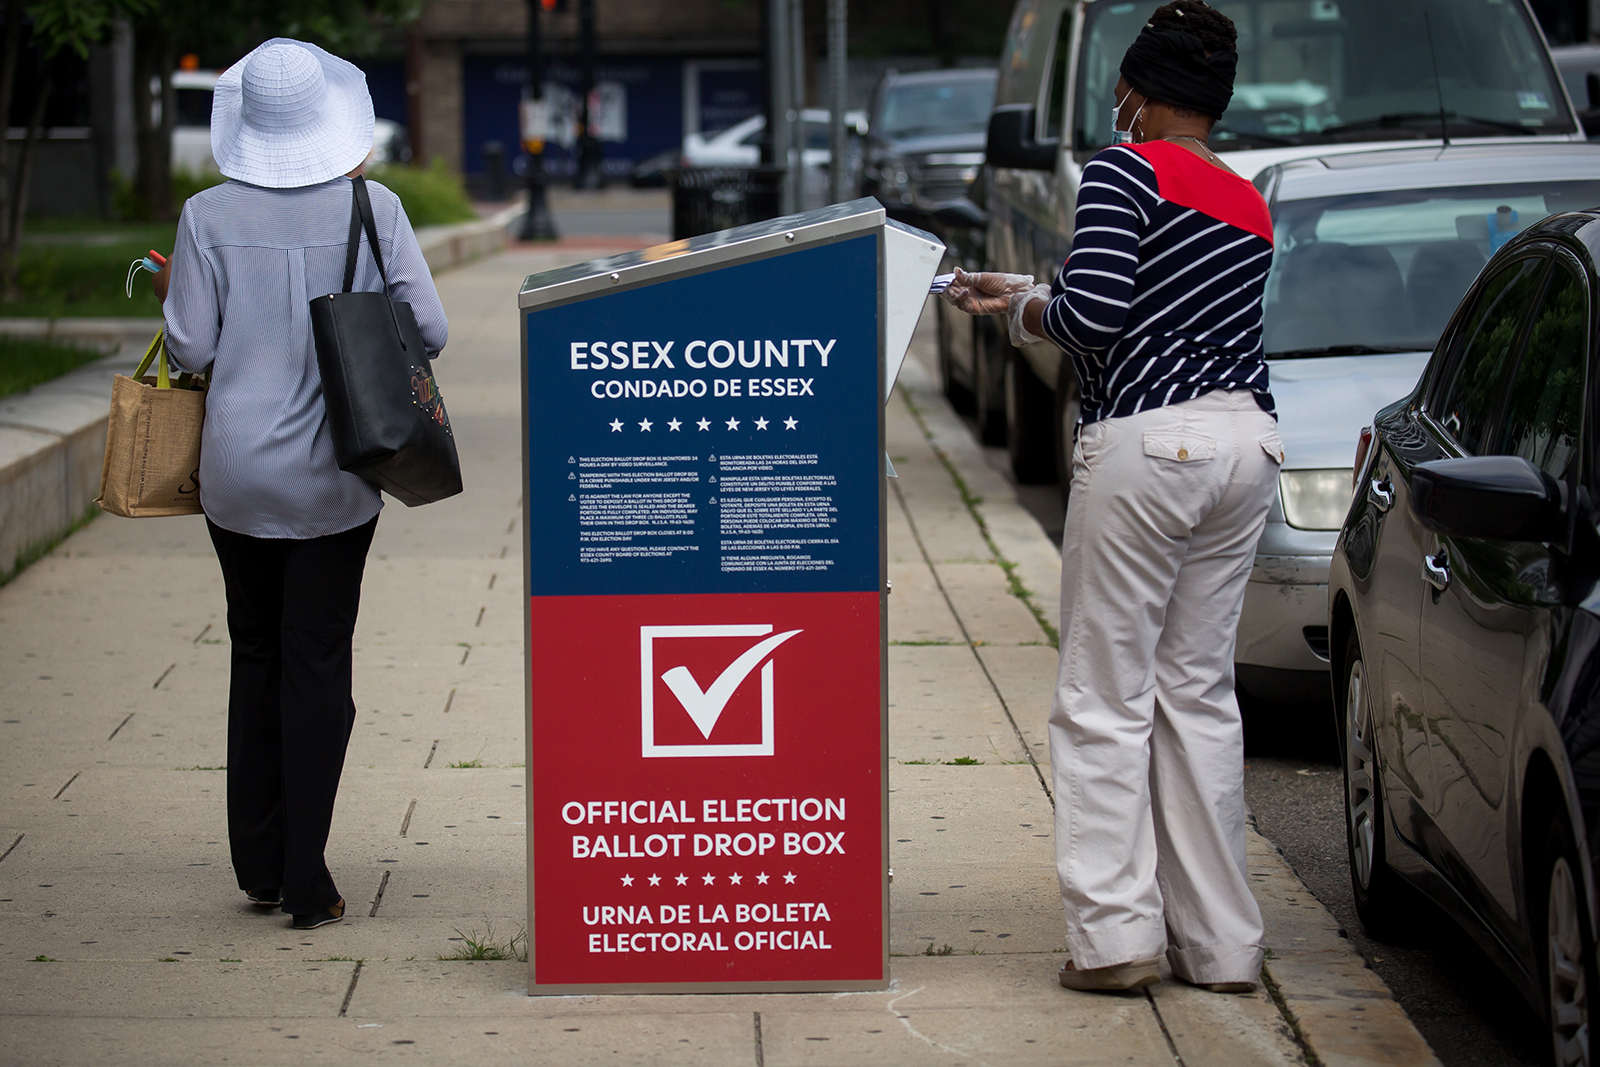 A voter uses a mail-in ballot drop off box location in Newark, New Jersey on July 7.